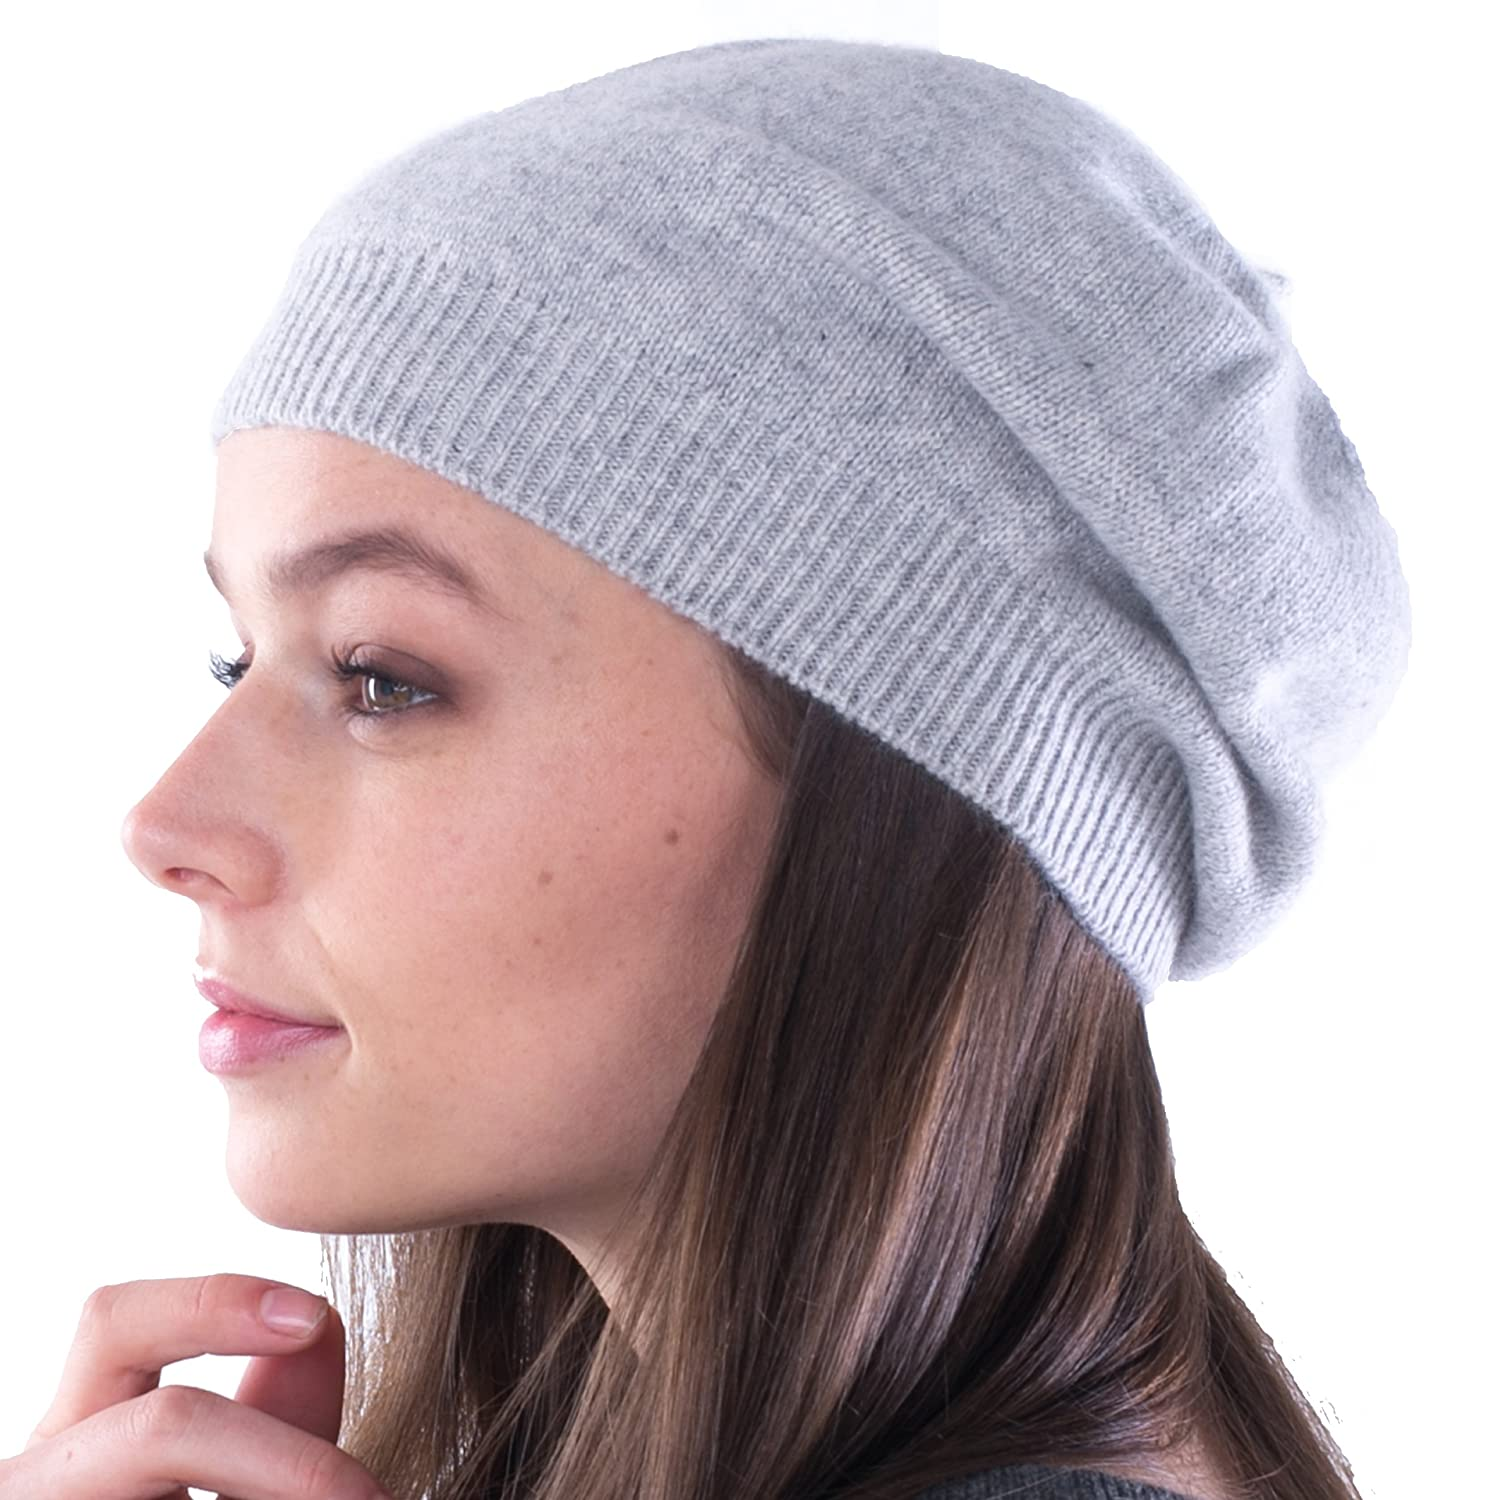 silver cashmere 4 U 100% Cashmere Beret Hat for Women